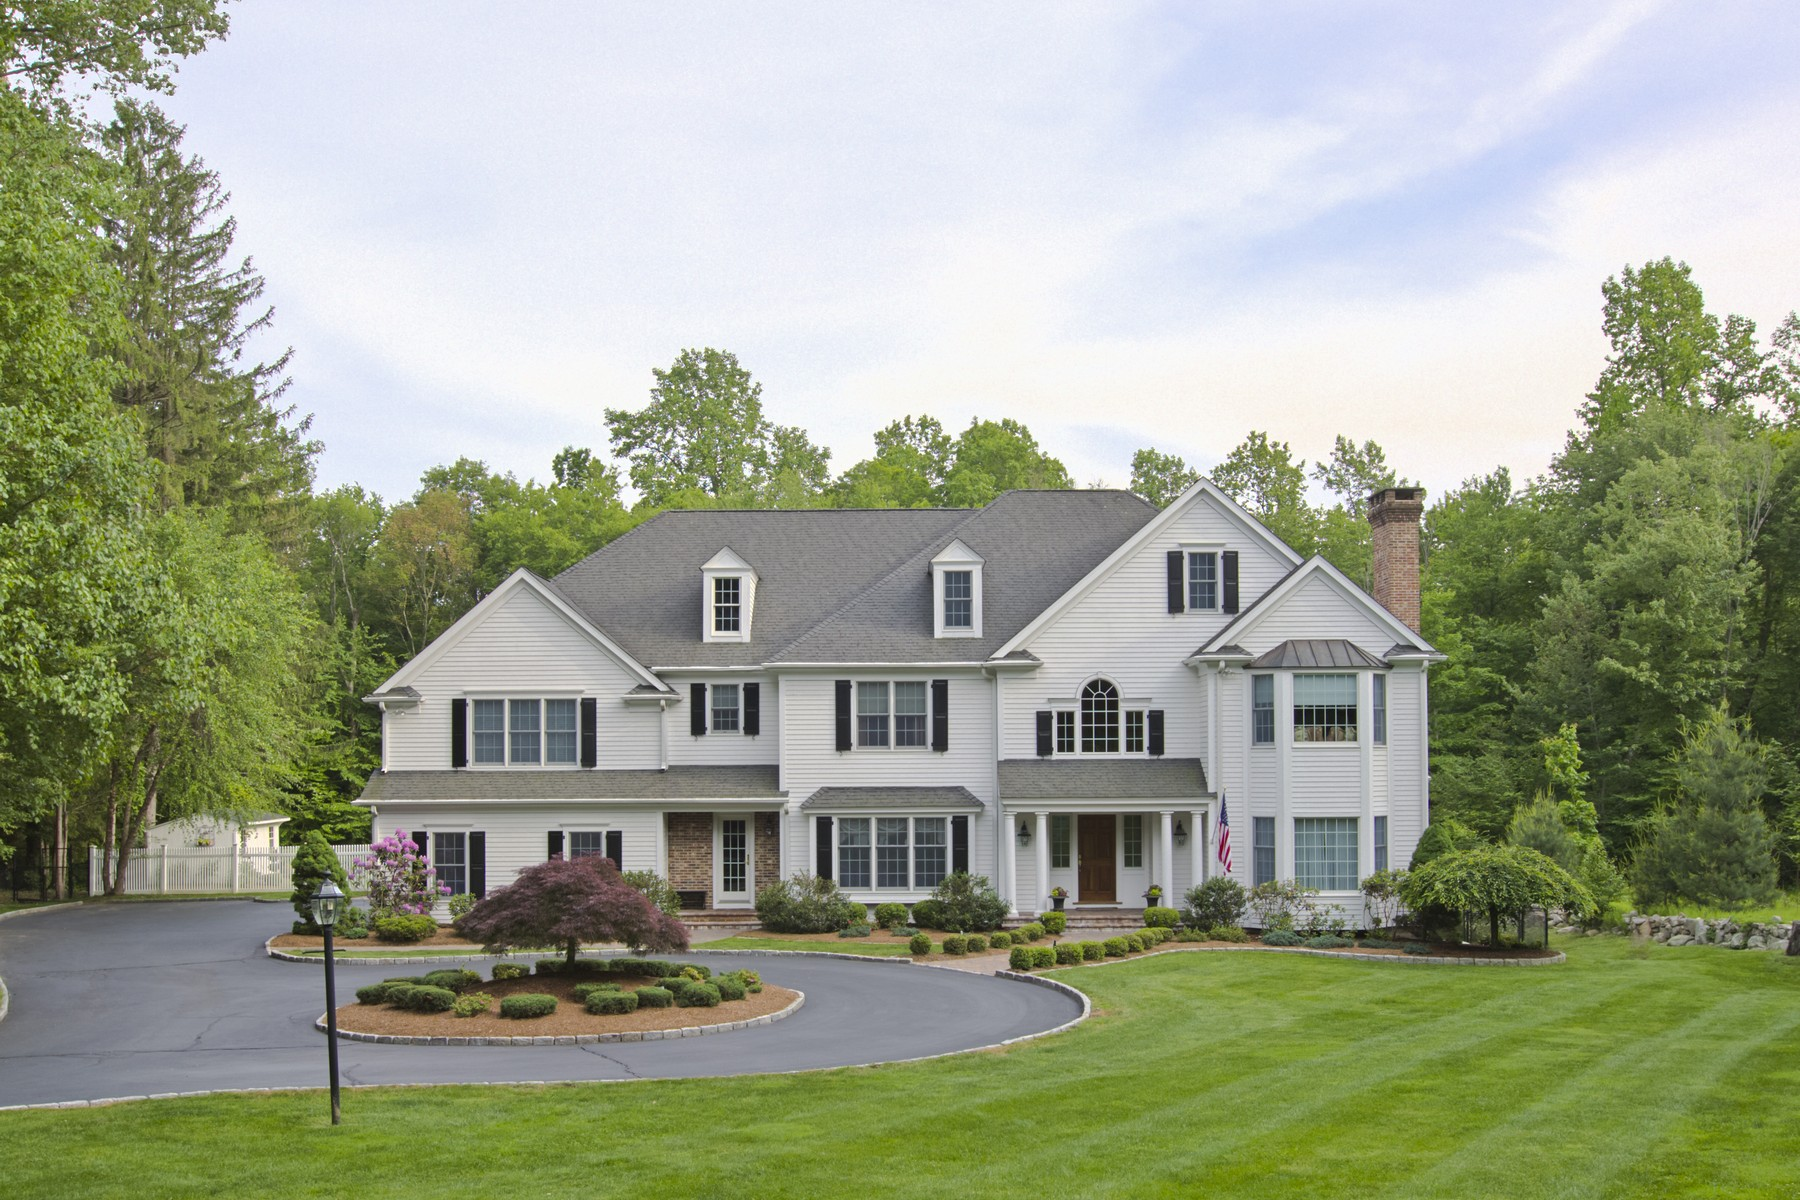 Single Family Home for Sale at Exceptional 6 Bedroom Colonial 6 Eustis Lane Ridgefield, Connecticut 06877 United States